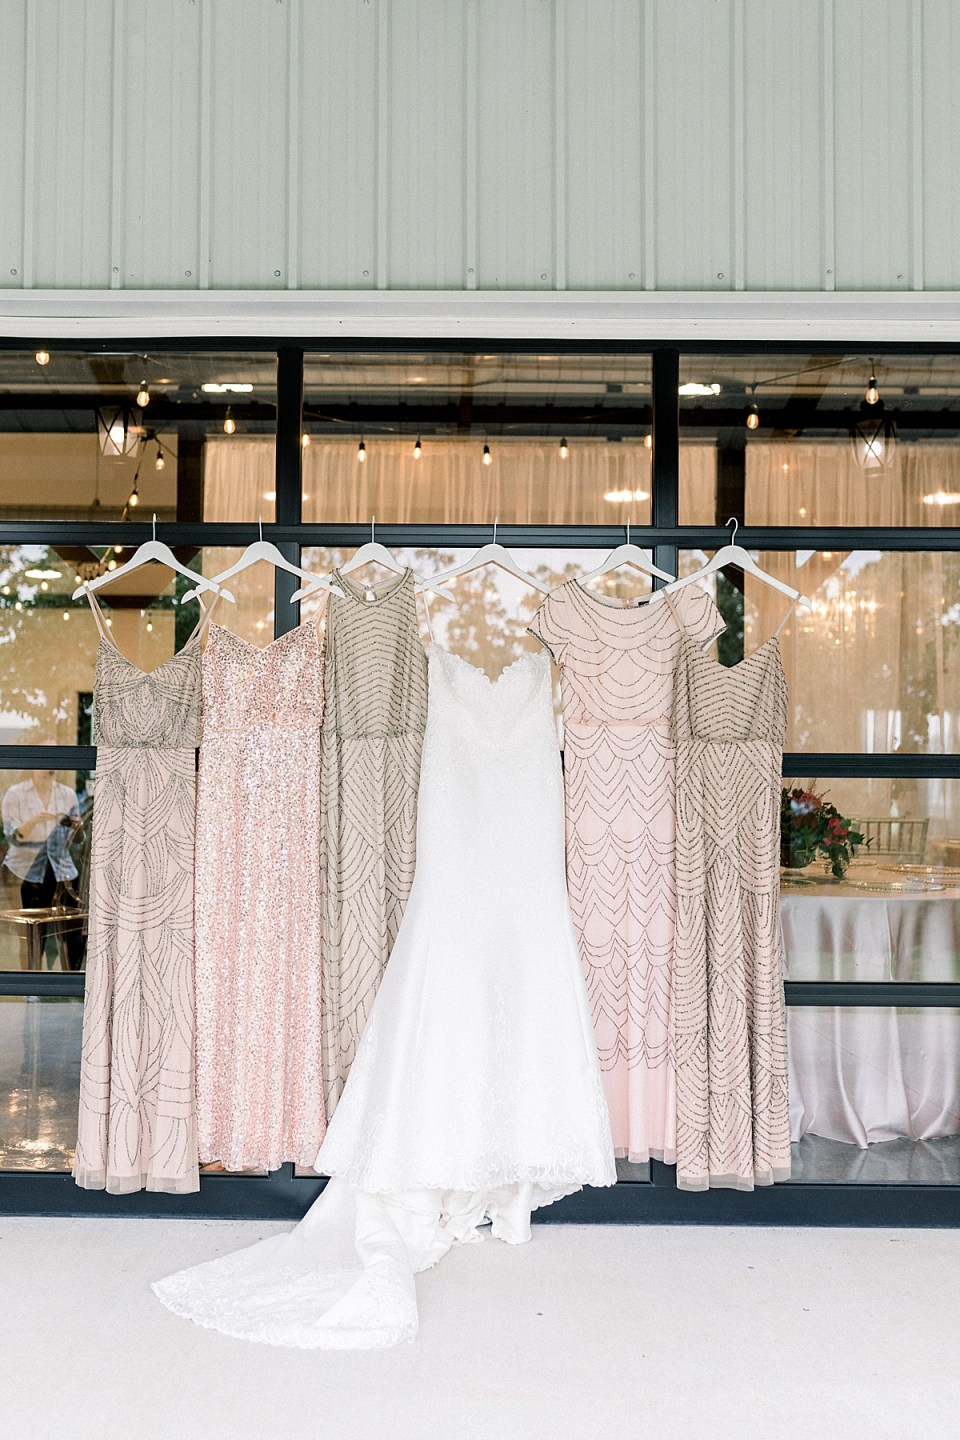 Art Deco bridesmaids dresses hanging with wedding gown at Dream Point Ranch Tulsa wedding venue